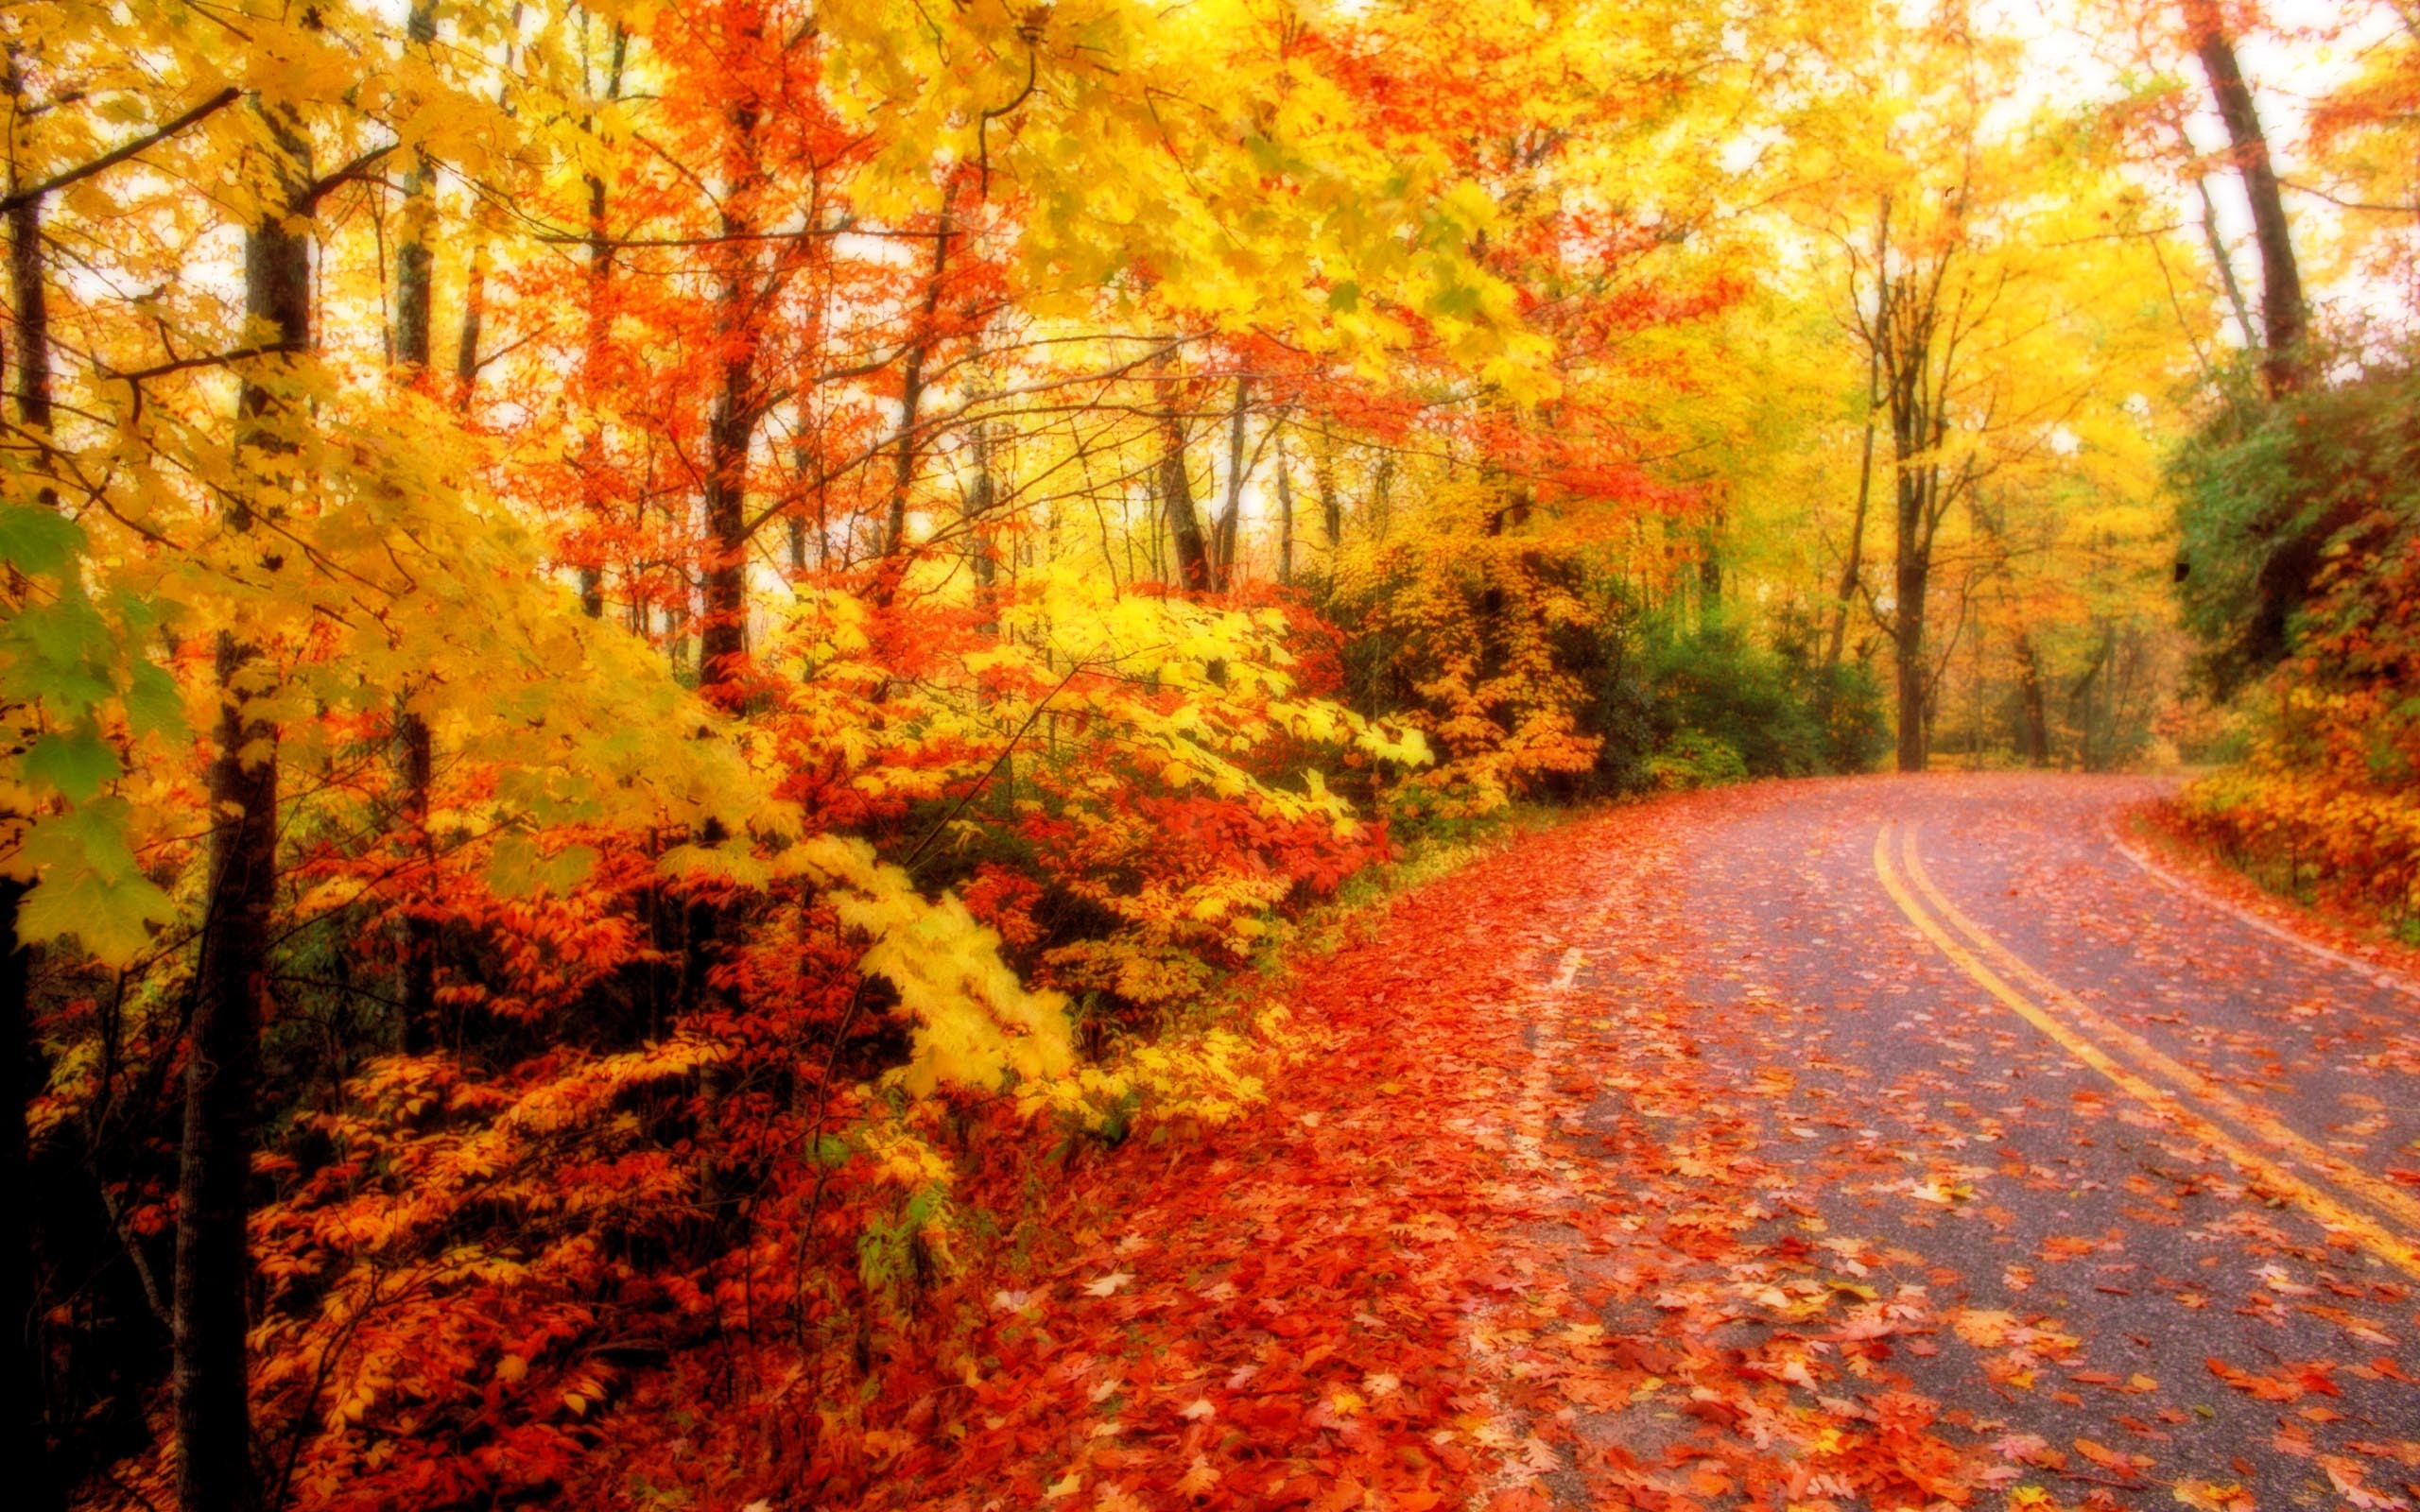 2560x1600 Free Desktop Wallpaper Autumn Leaves. autumn leaves